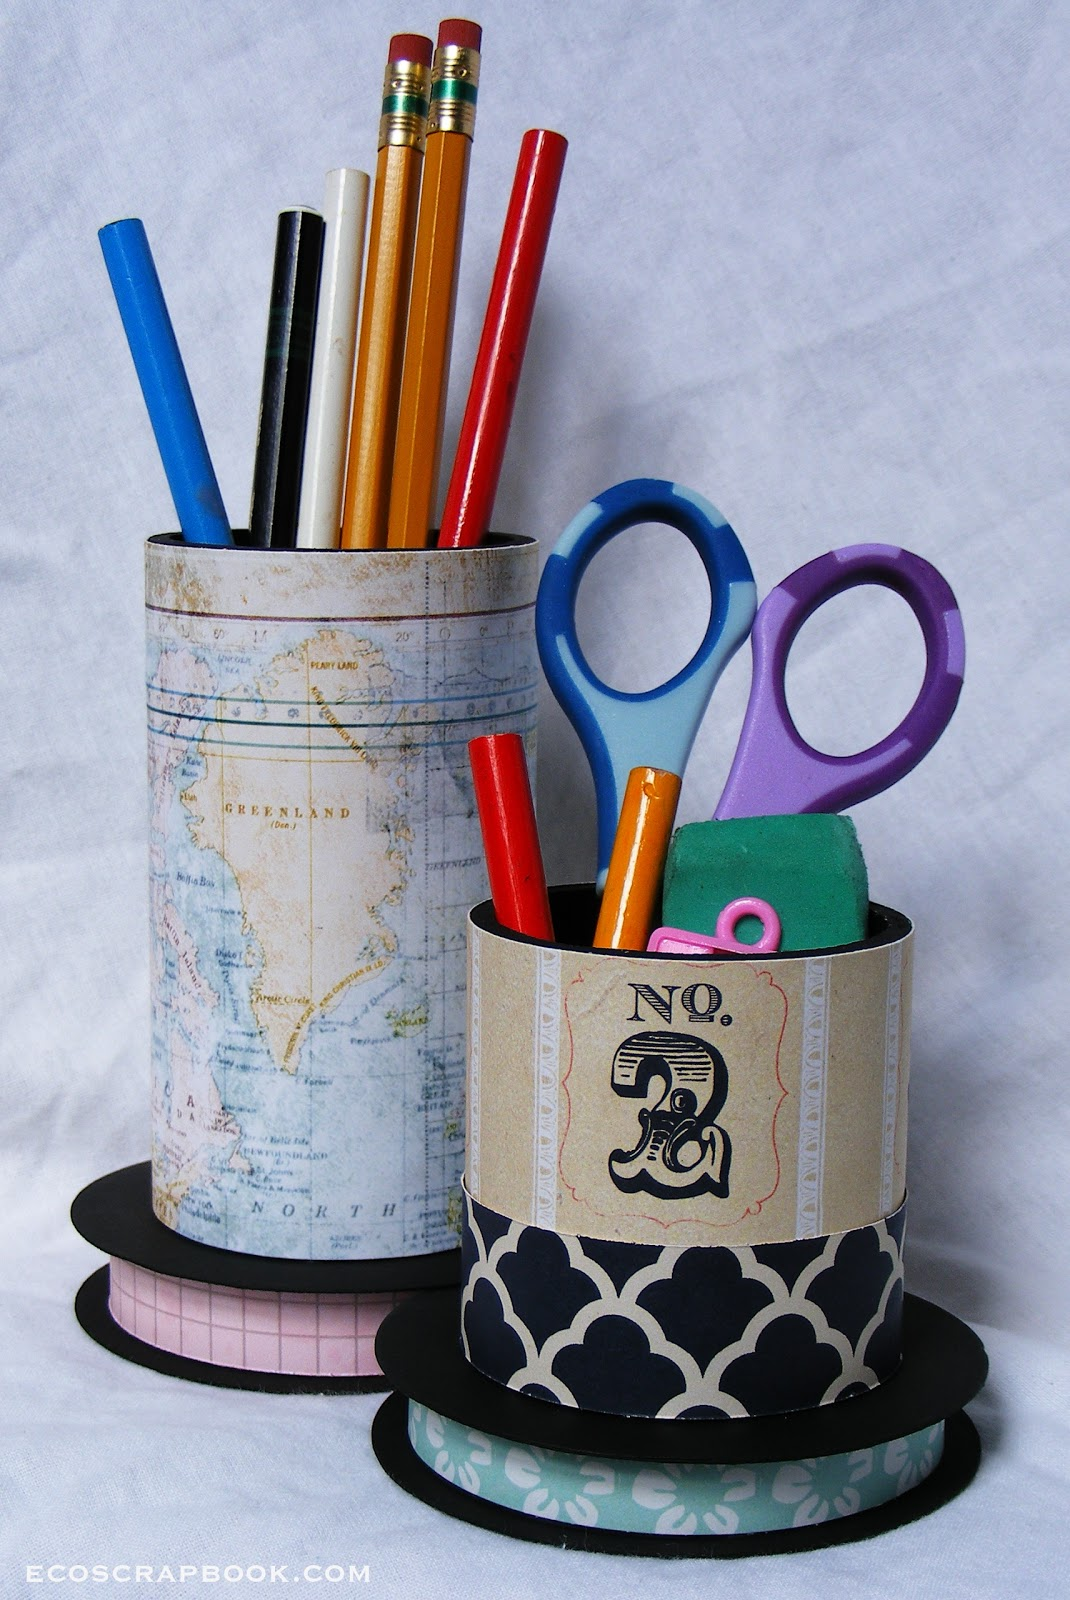 EcoScrapbook: Back-to-school project tutorial: Upcycled pencil holders